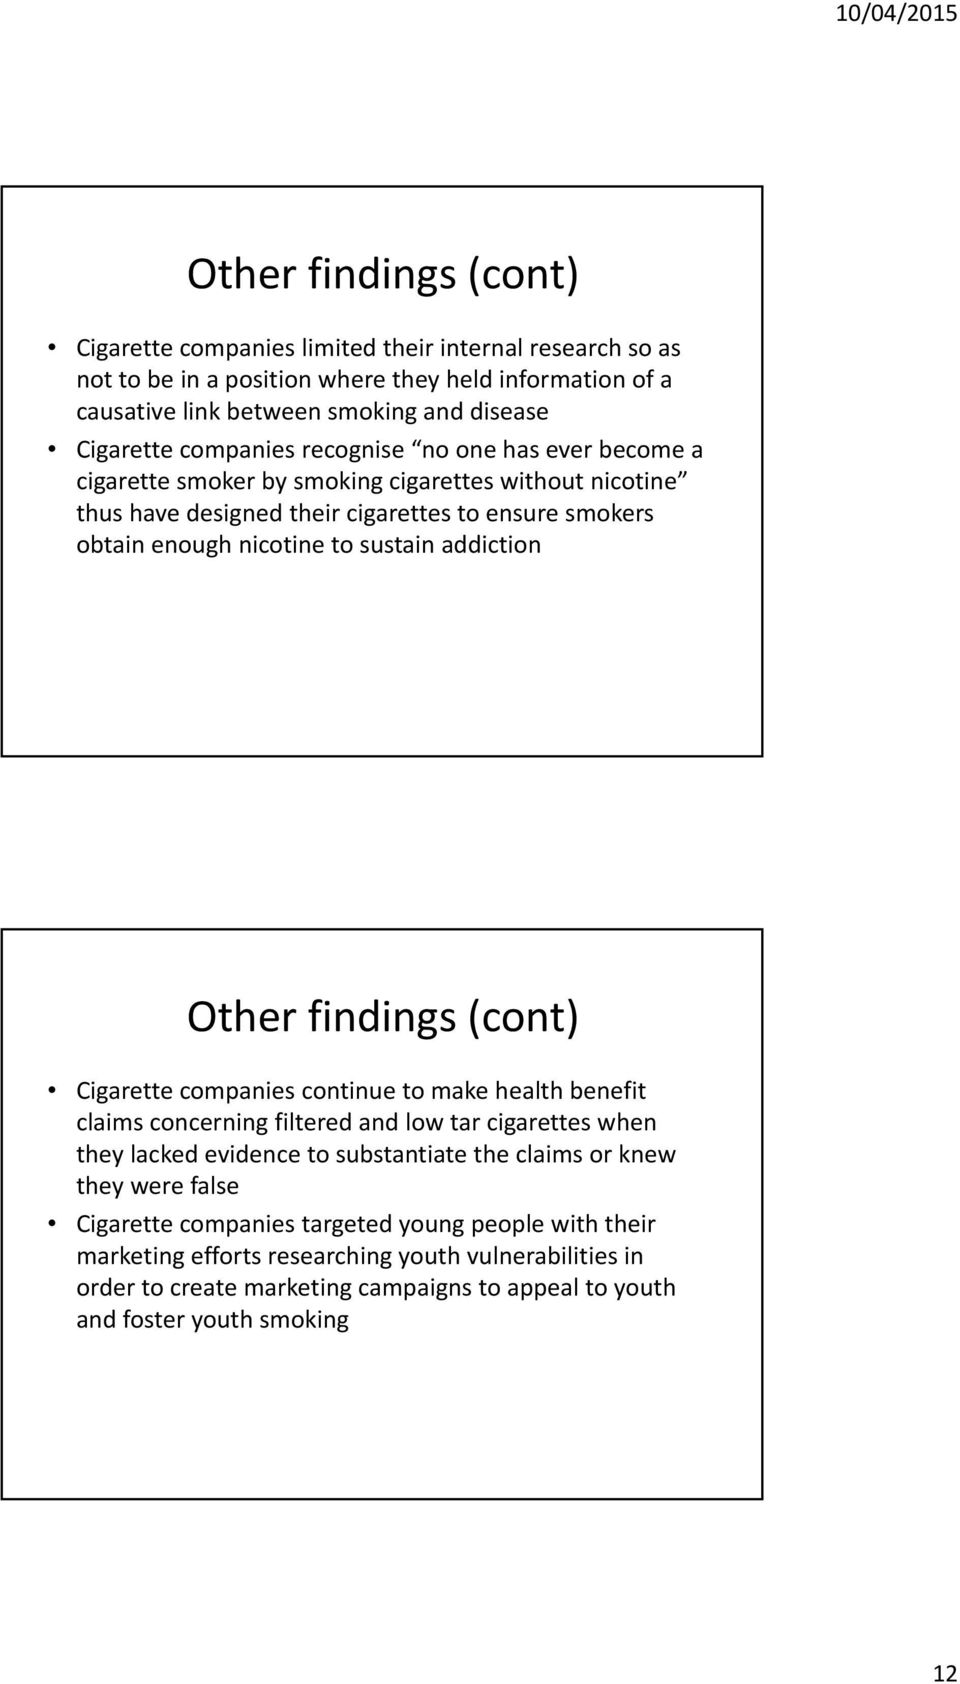 addiction Other findings (cont) Cigarette companies continue to make health benefit claims concerning filtered and low tar cigarettes when they lacked evidence to substantiate the claims or knew